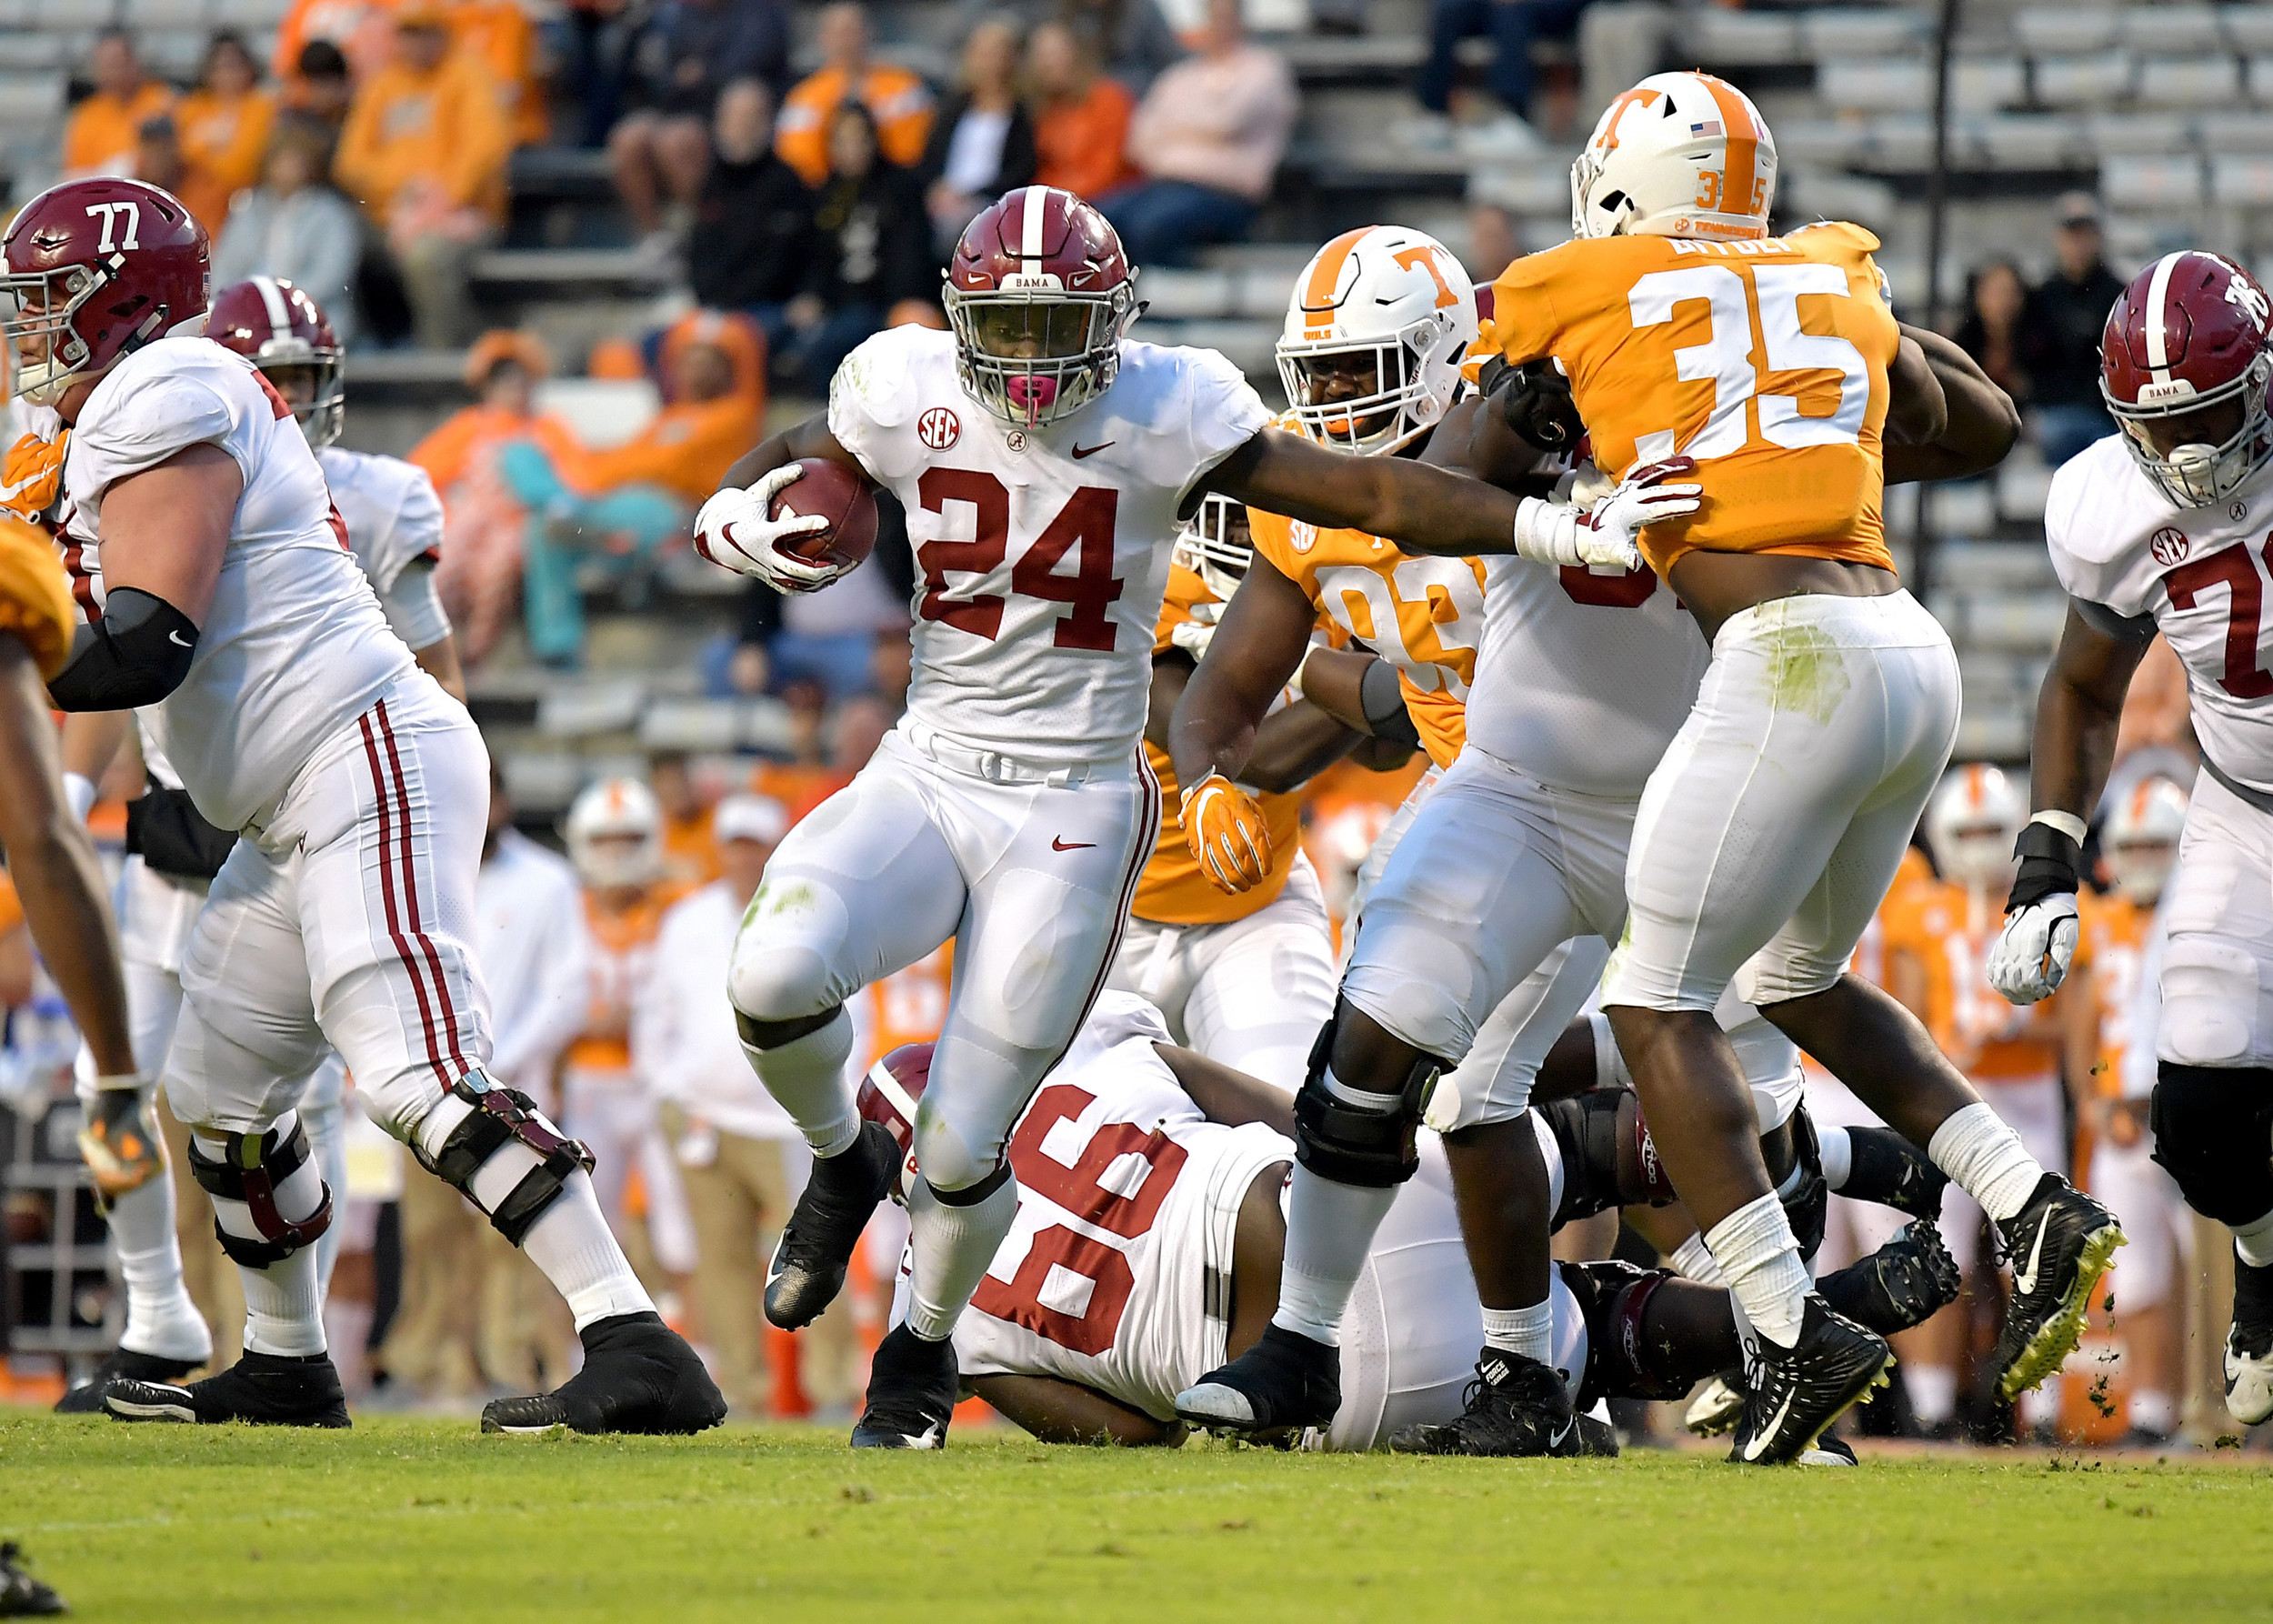 Alabama Crimson Tide running back Brian Robinson Jr. (24) with a carry in the fourth quarter of the Alabama at Tennessee NCAA football game on Saturday, Oct. 20, 2018, at Neyland Stadium in Knoxville. Tenn. Alabama wins 58-21. (Photo by Lee Walls)